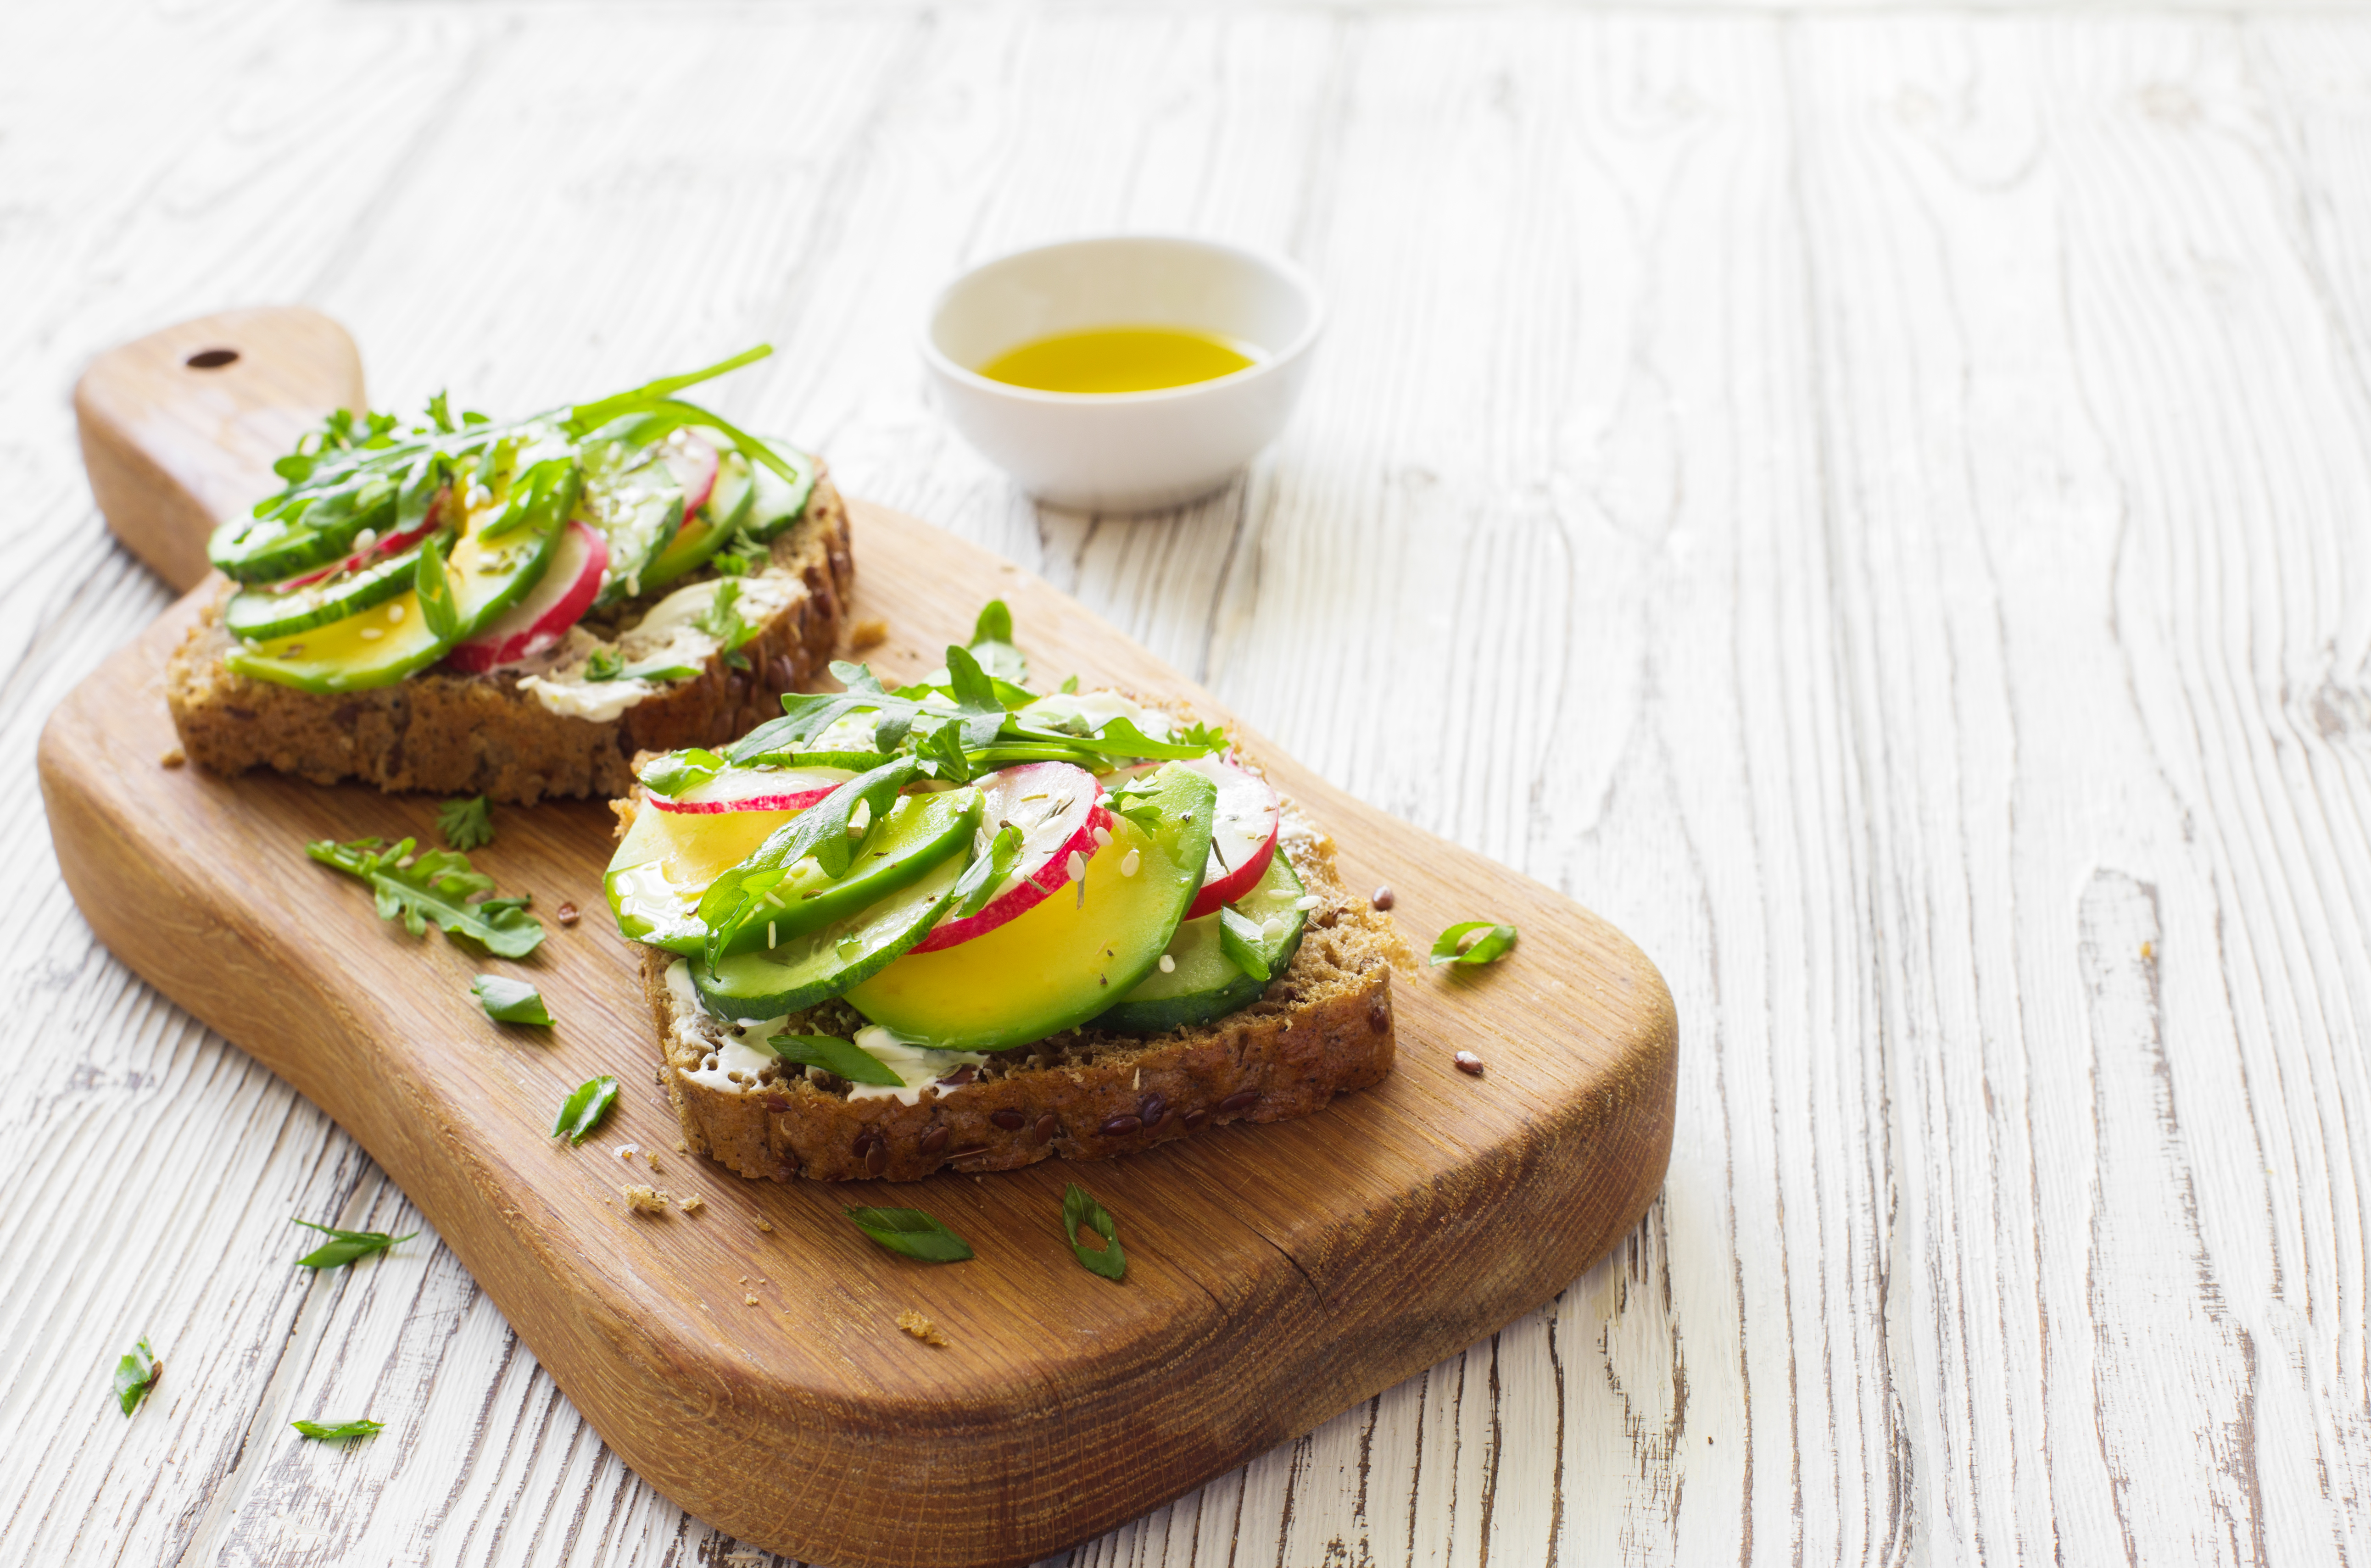 Open-faced Sandwich with Veggies